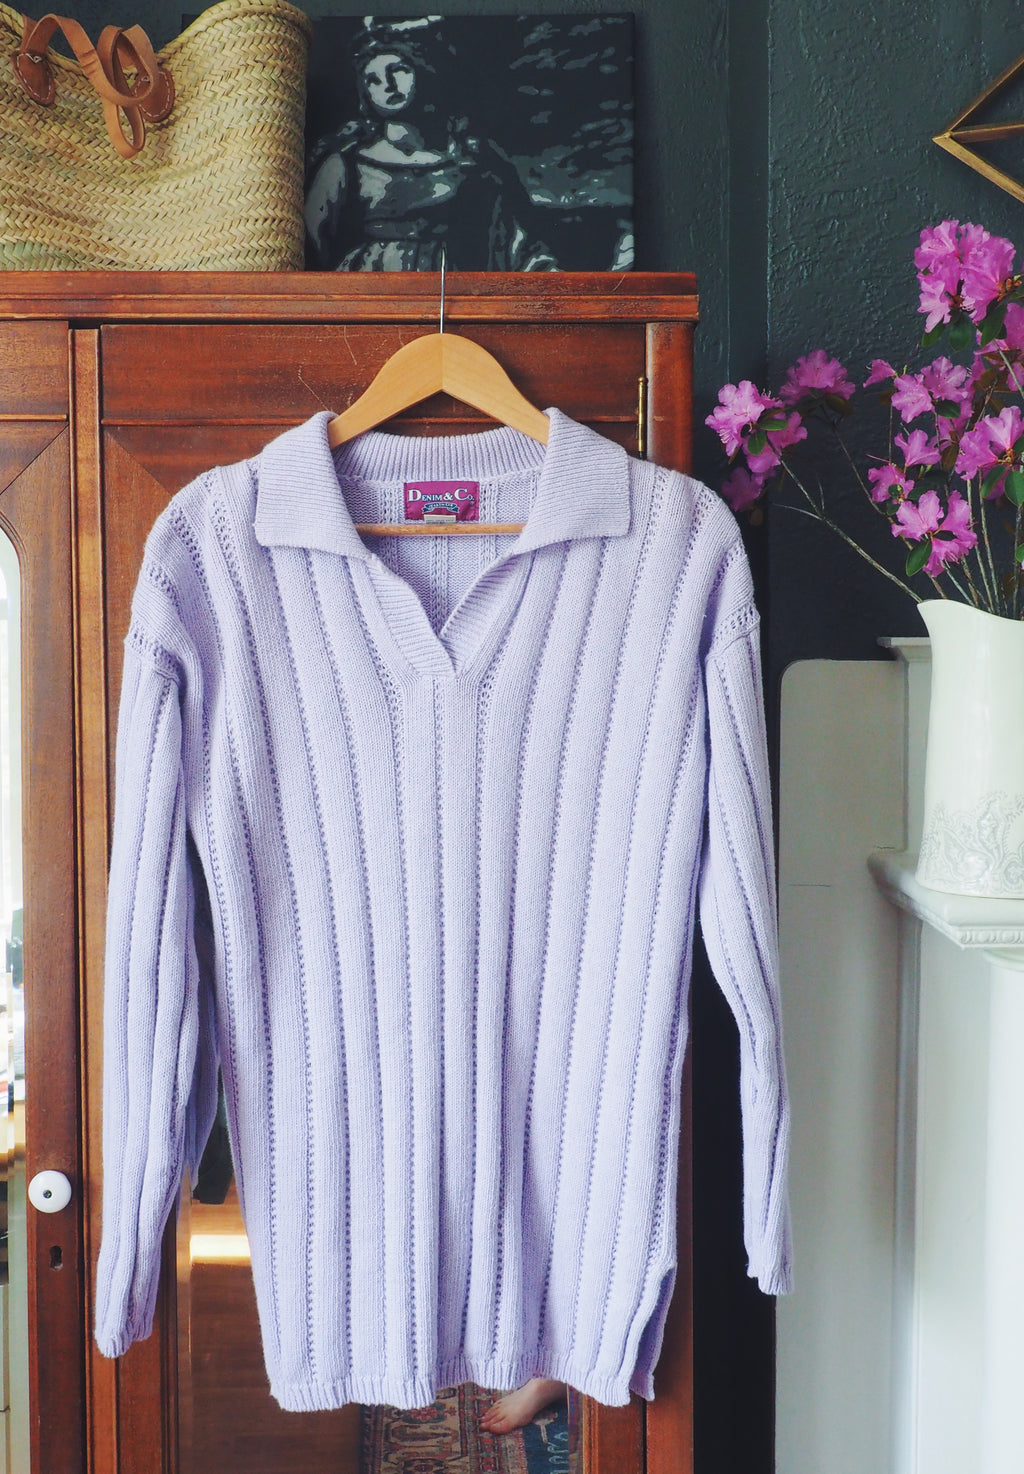 Vintage Oversized Lavender Pullover Knitted Sweater